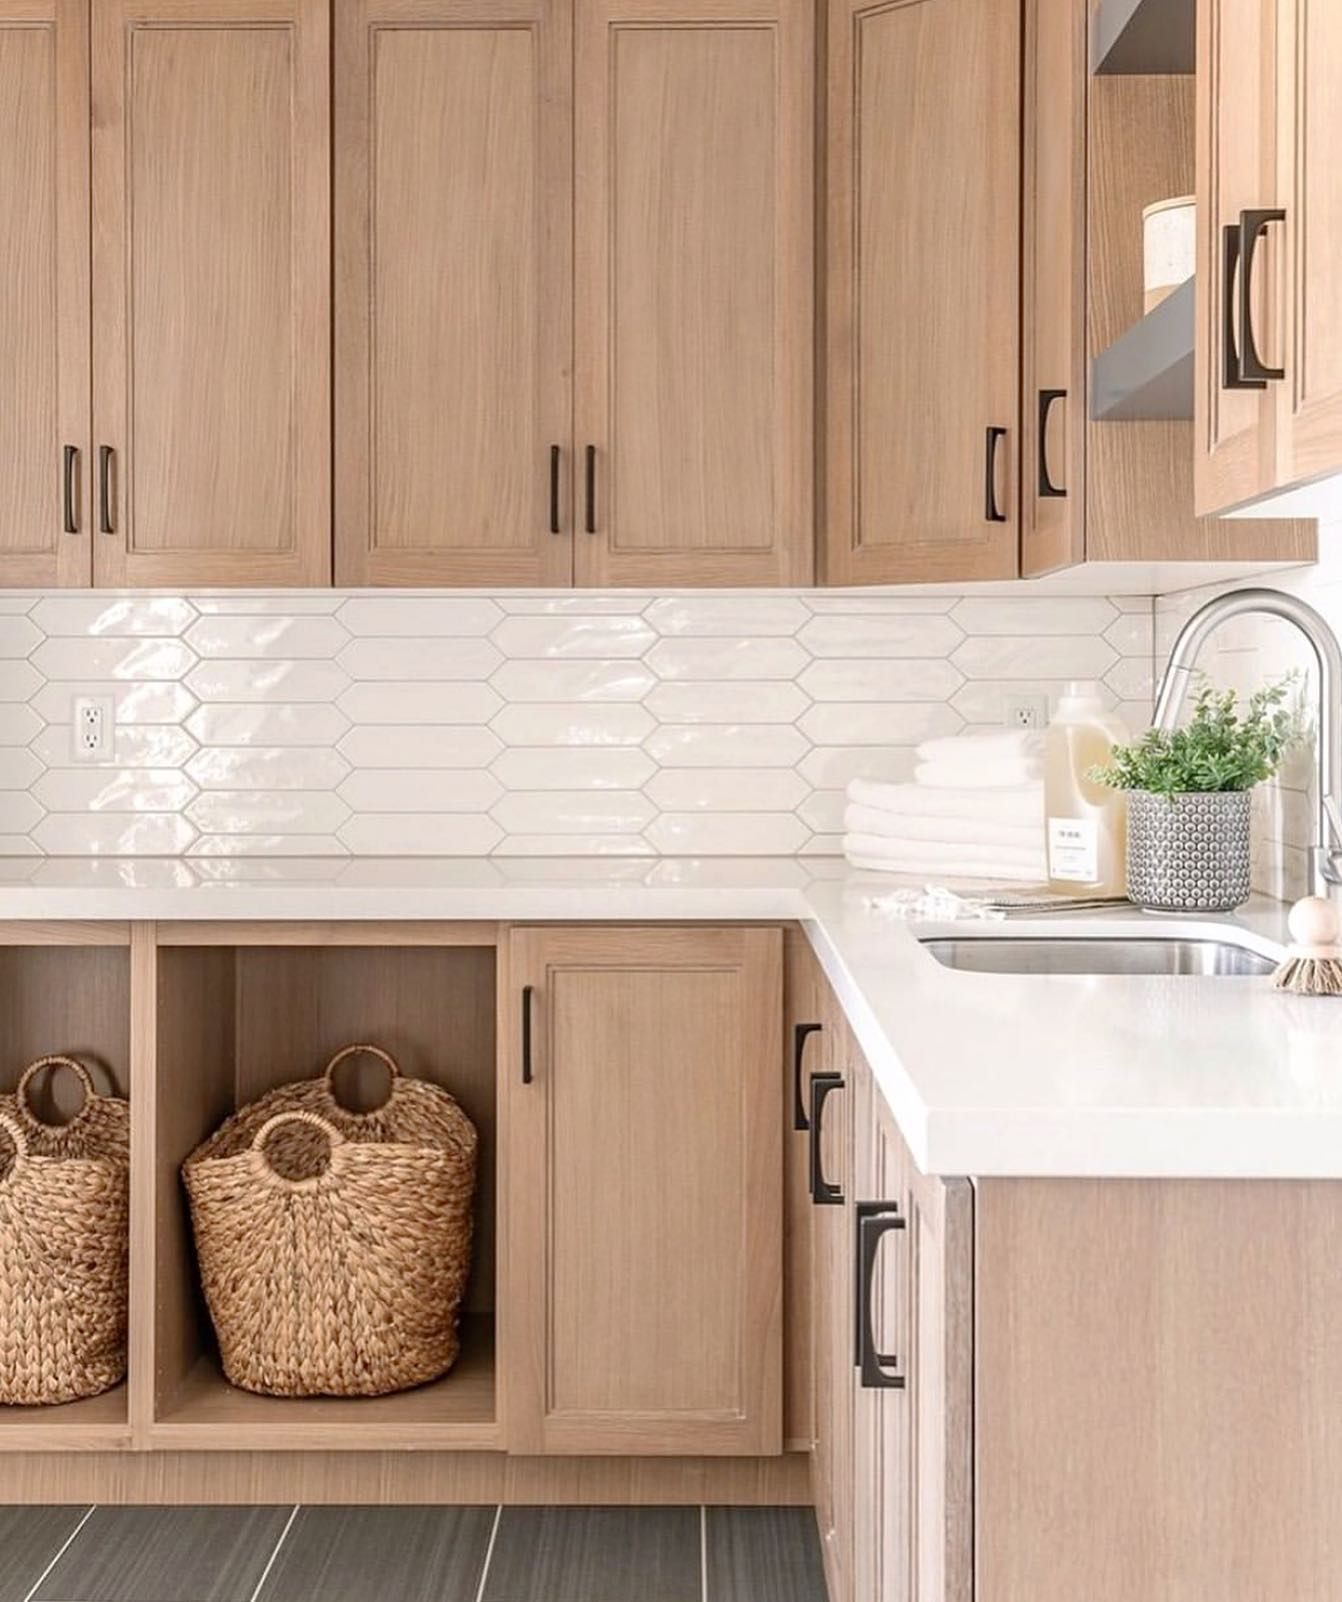 Rustic Home Decor Natural Wood Cabinets Cabinets Cheapkitchencabinets Farmhousekitchencabinets In 2020 White Oak Kitchen Oak Kitchen Cabinets Natural Wood Kitchen